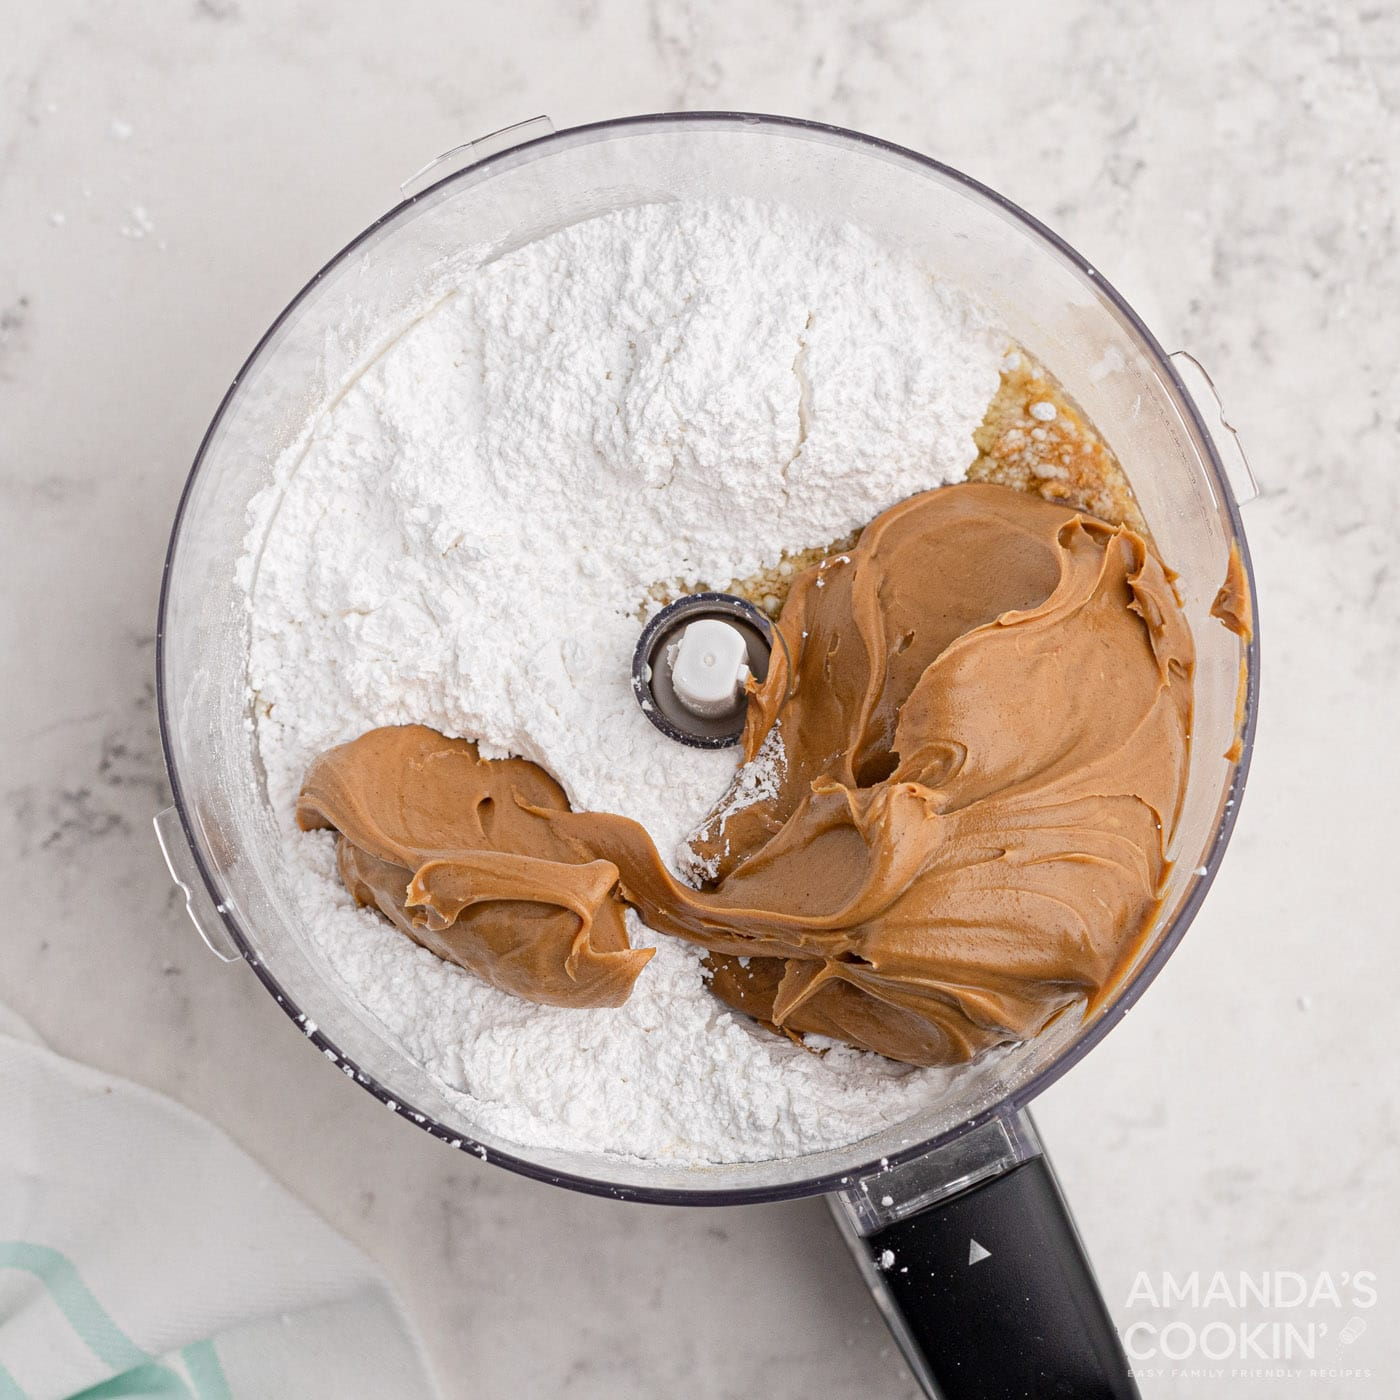 peanut butter bar ingredients in a food processor